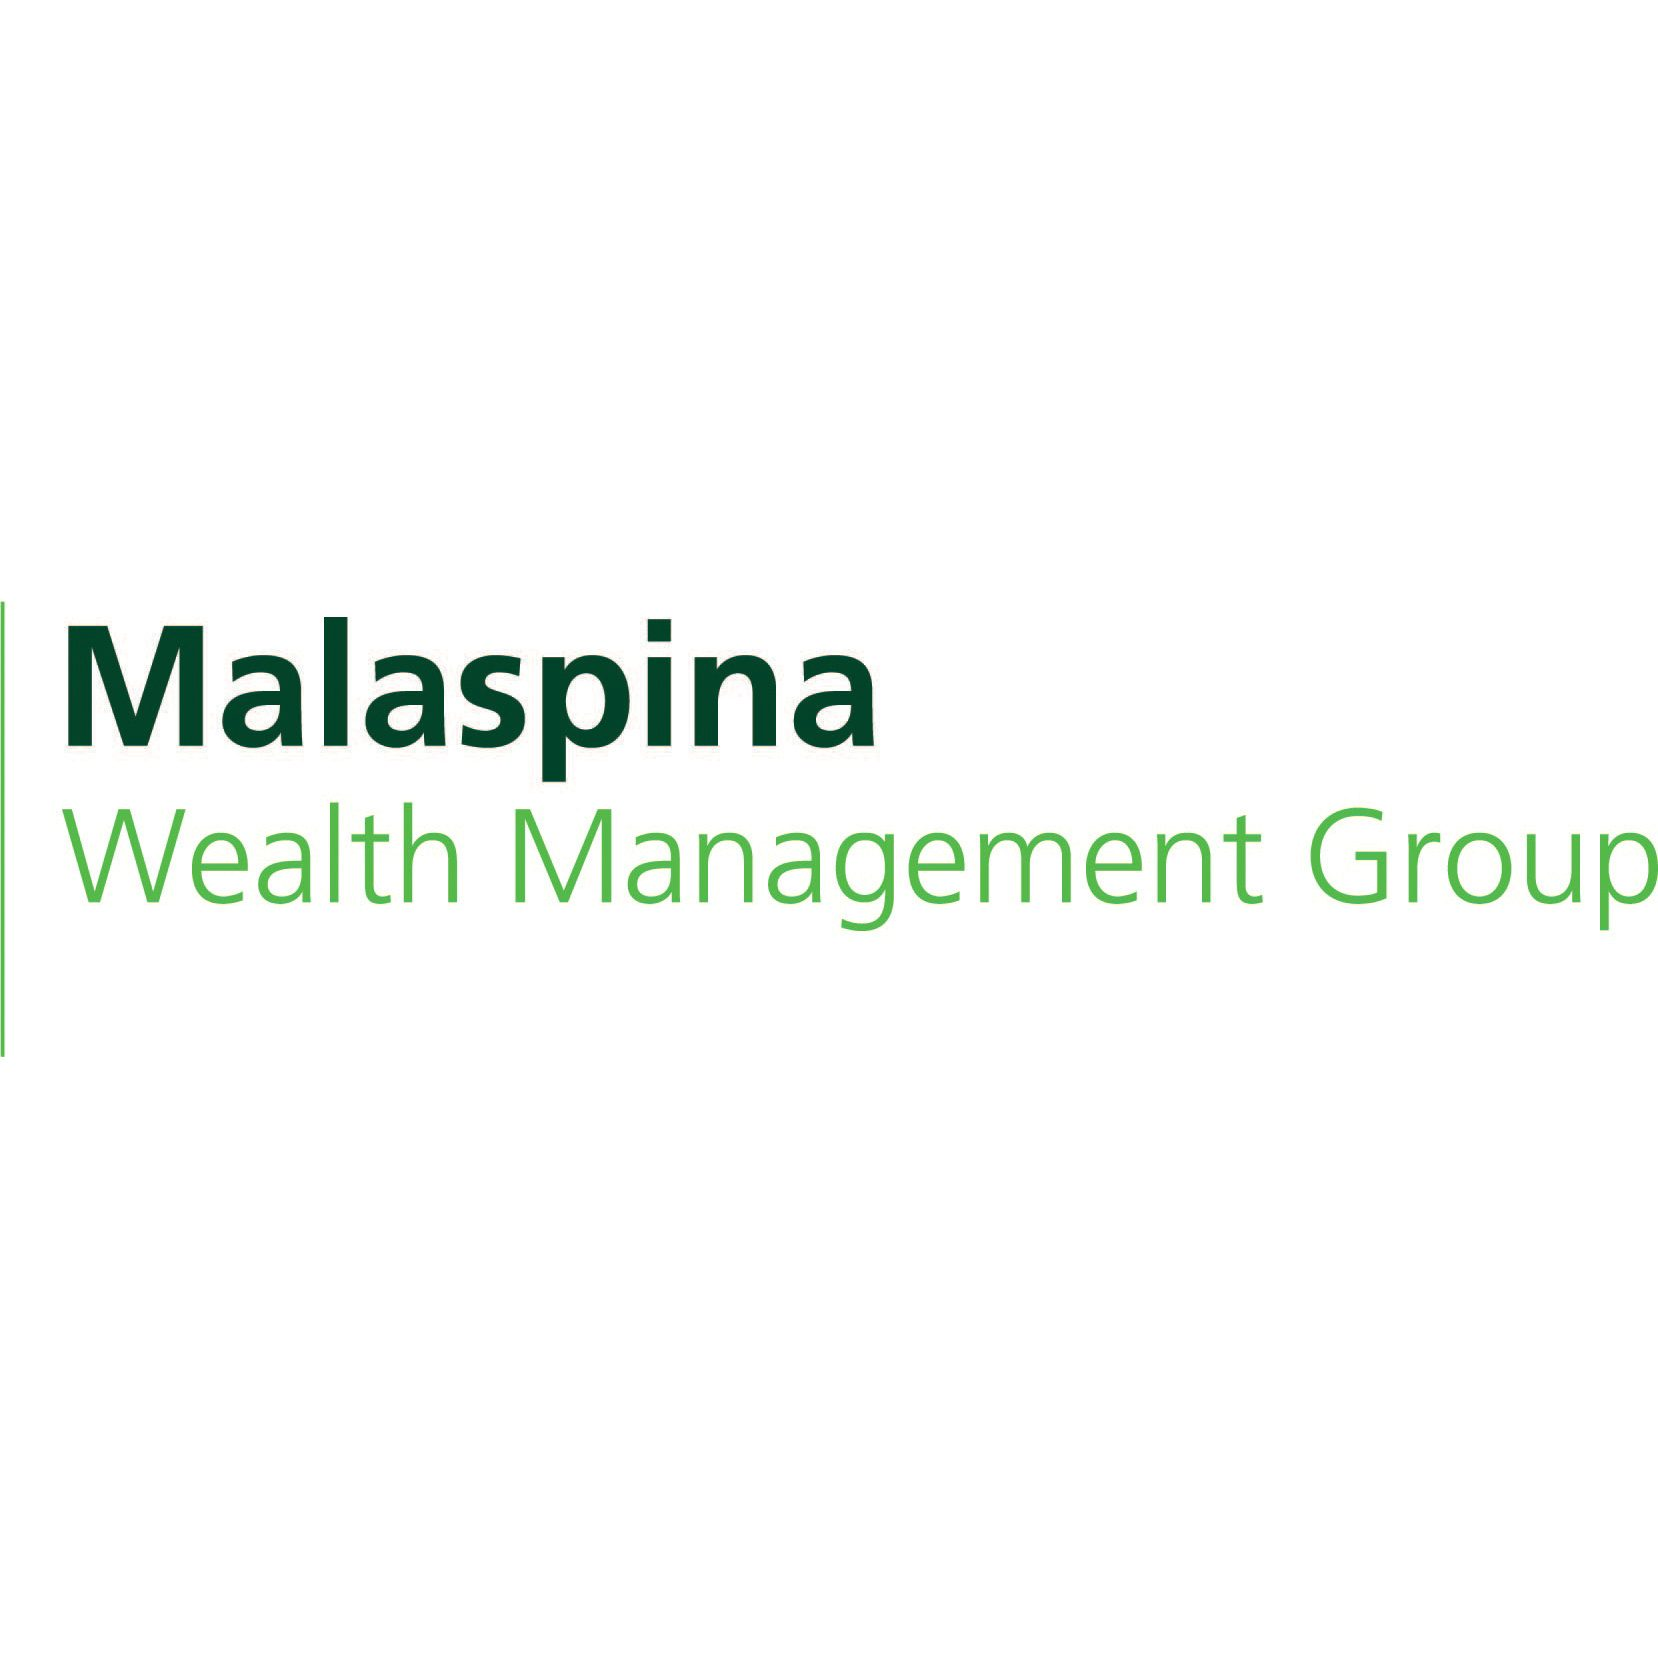 Malaspina Wealth Management Group - TD Wealth Private Investment Advice